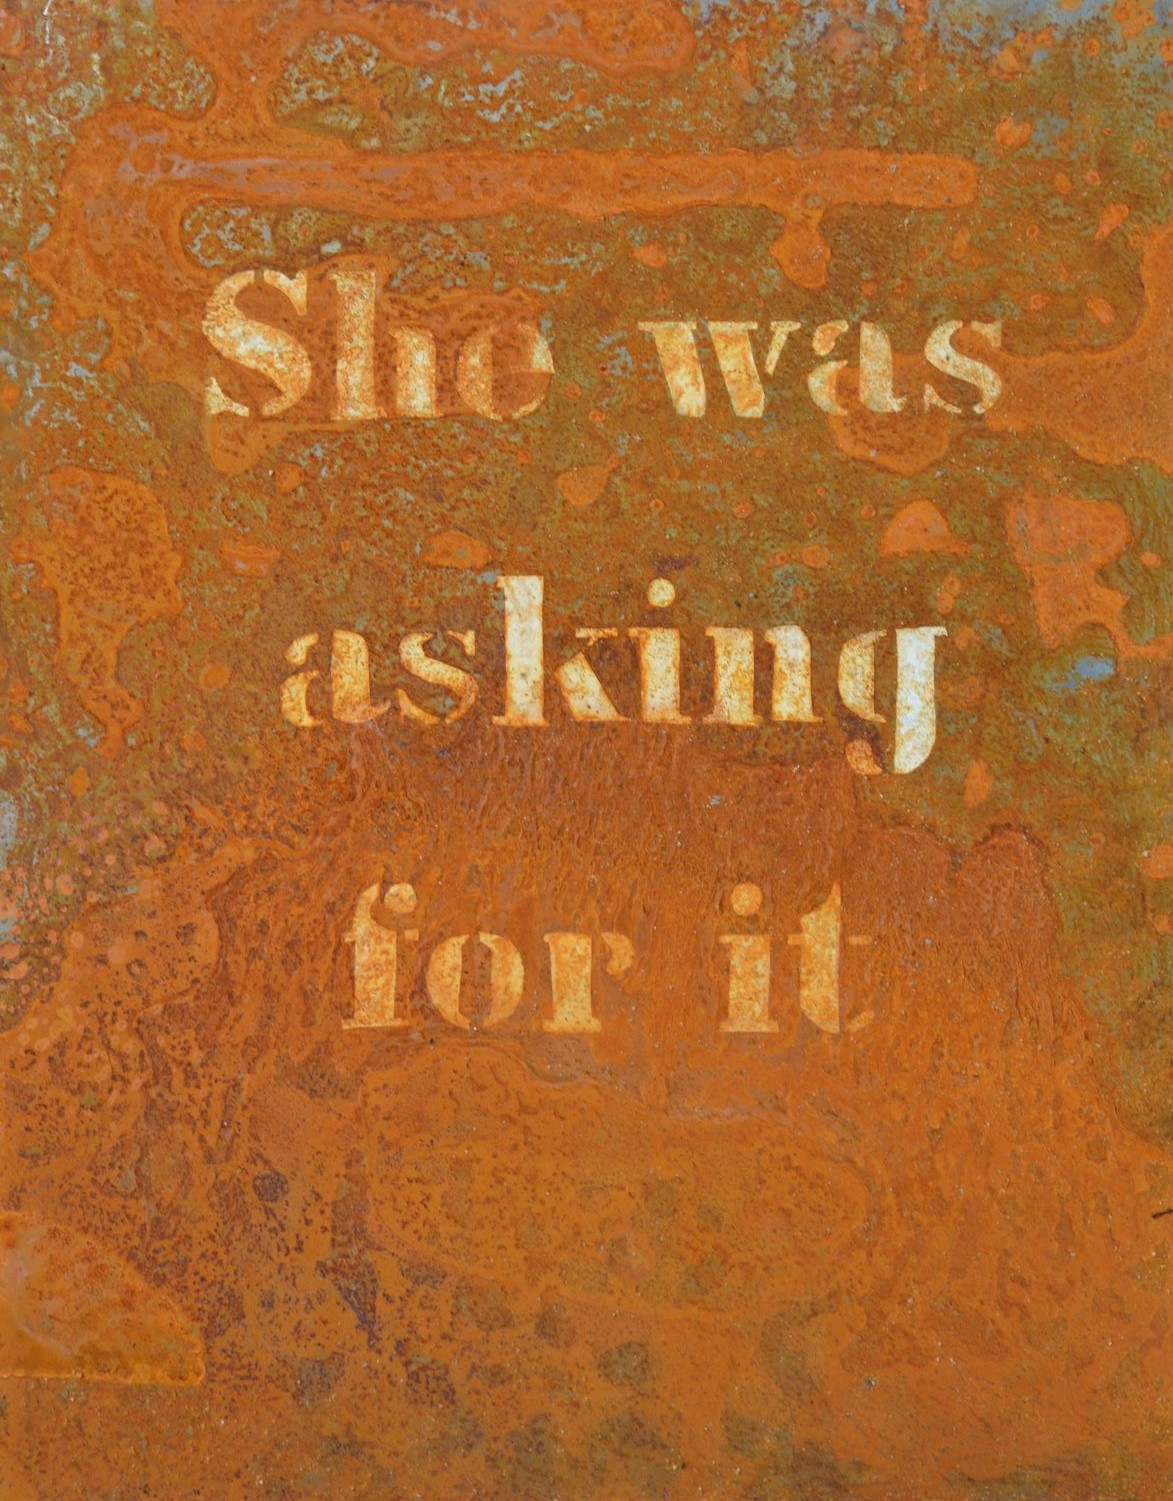 Corten steel panel with victim blaming quote.